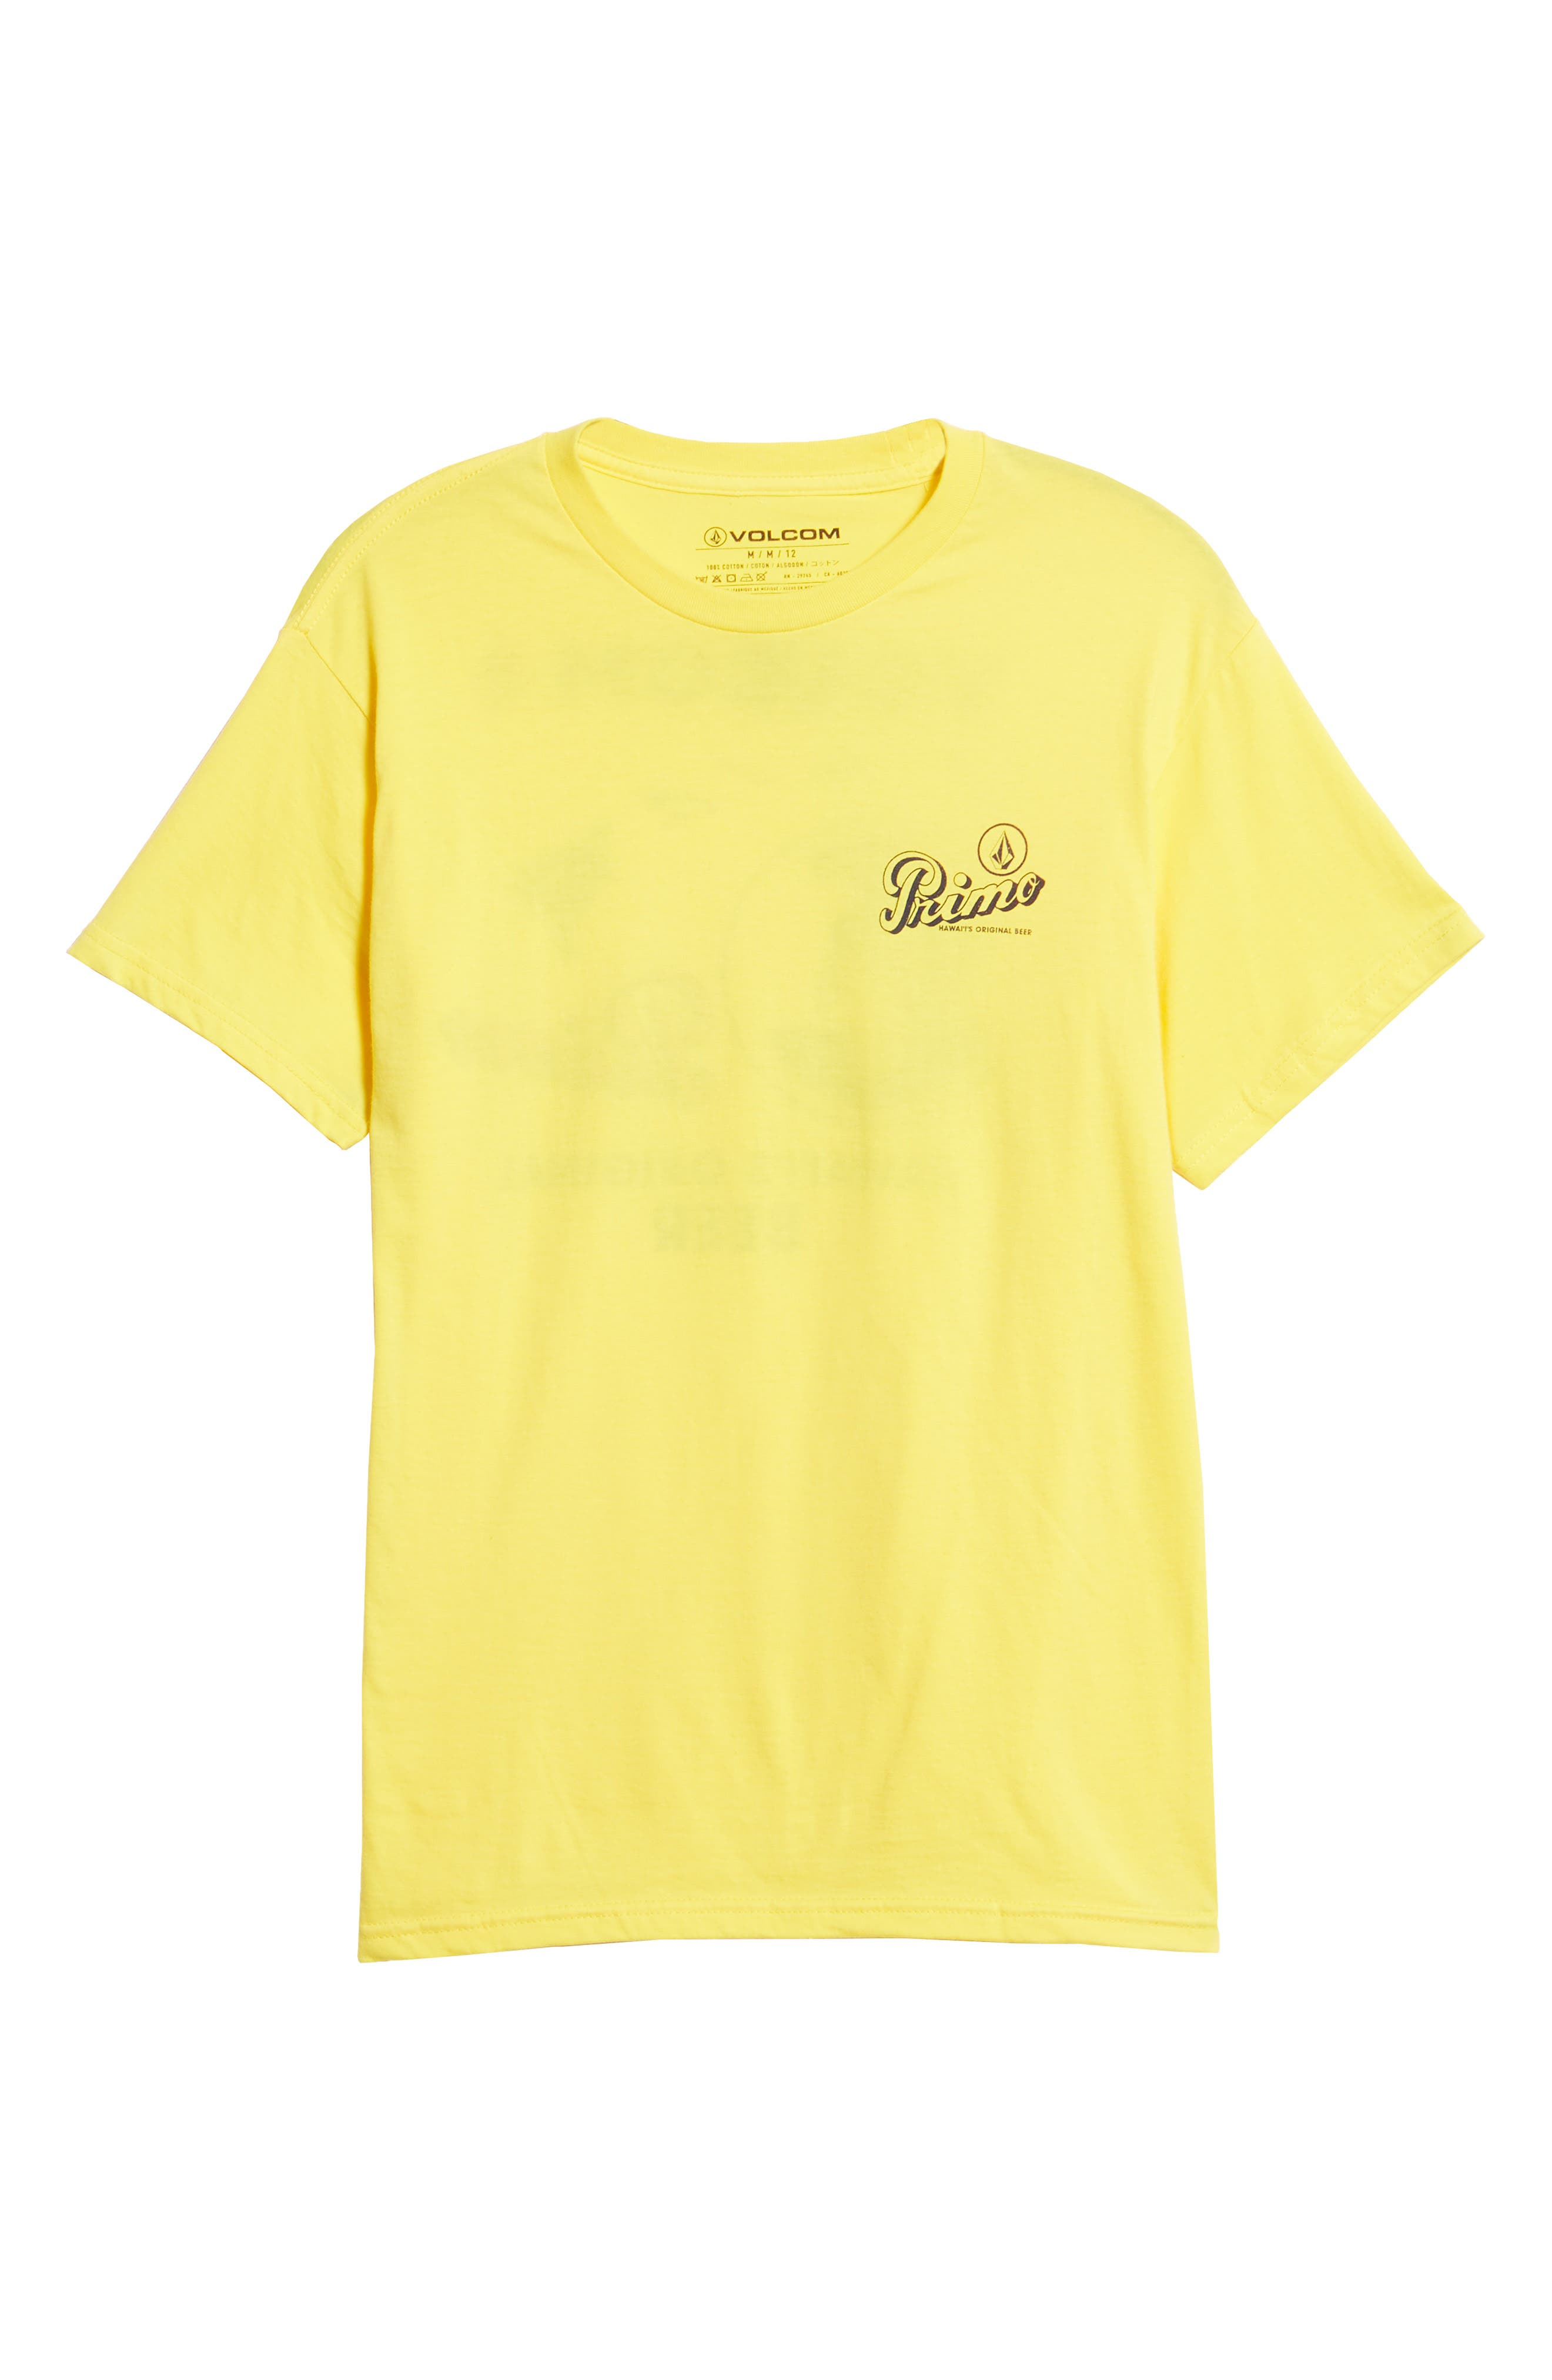 Primo Island T-Shirt,                             Alternate thumbnail 6, color,                             CYBER YELLOW